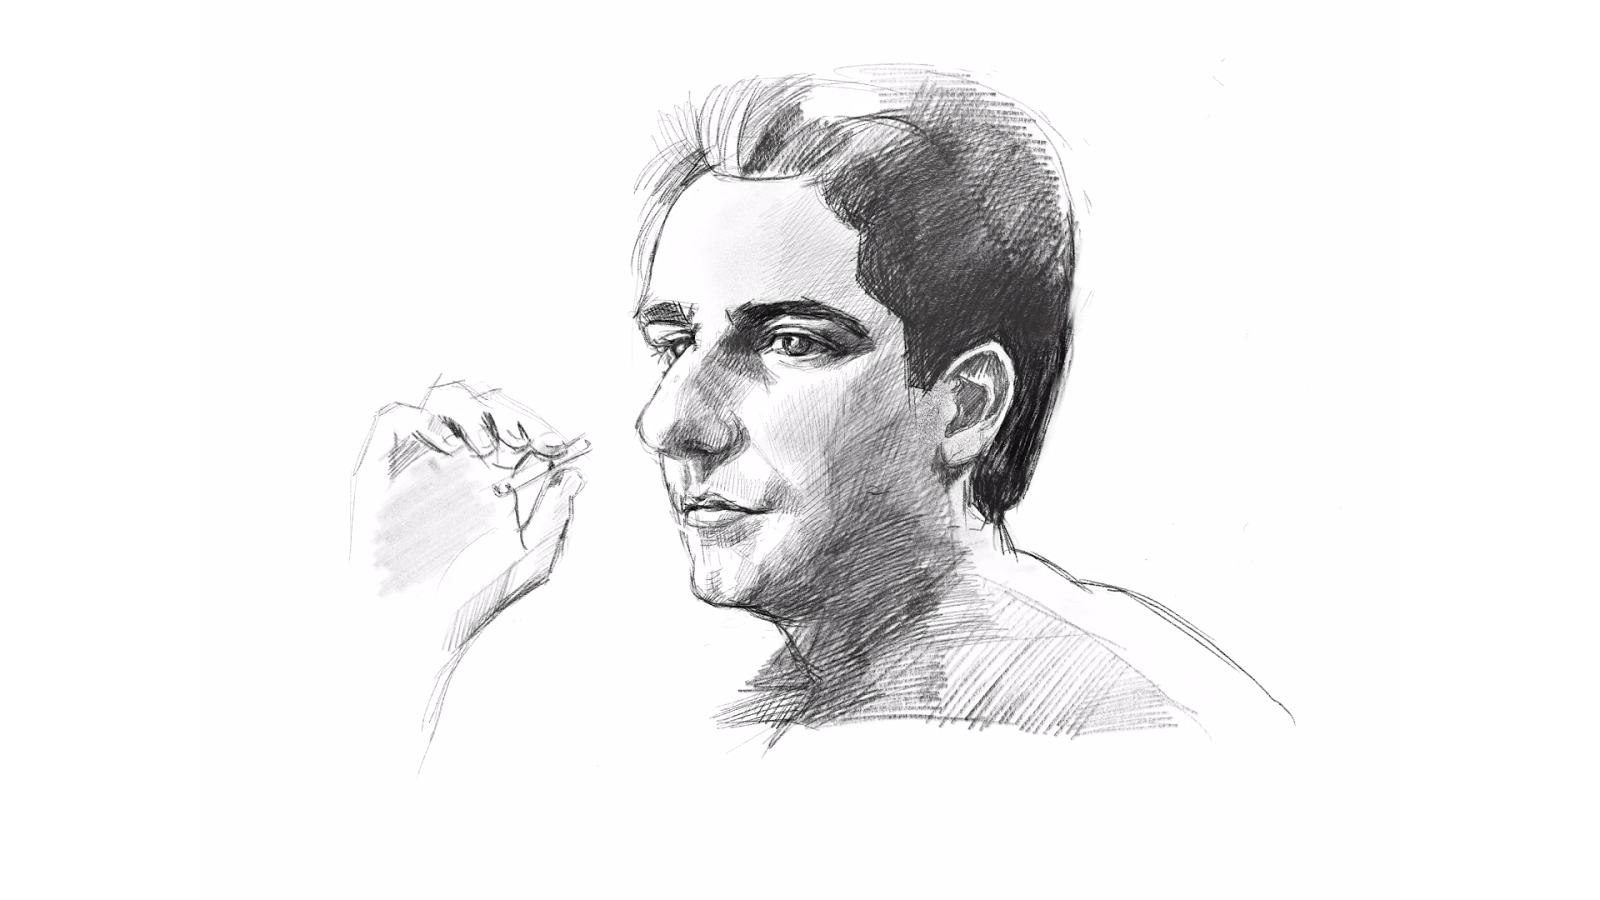 Hd drawing portrait. The hobbyist christopher moltisanti